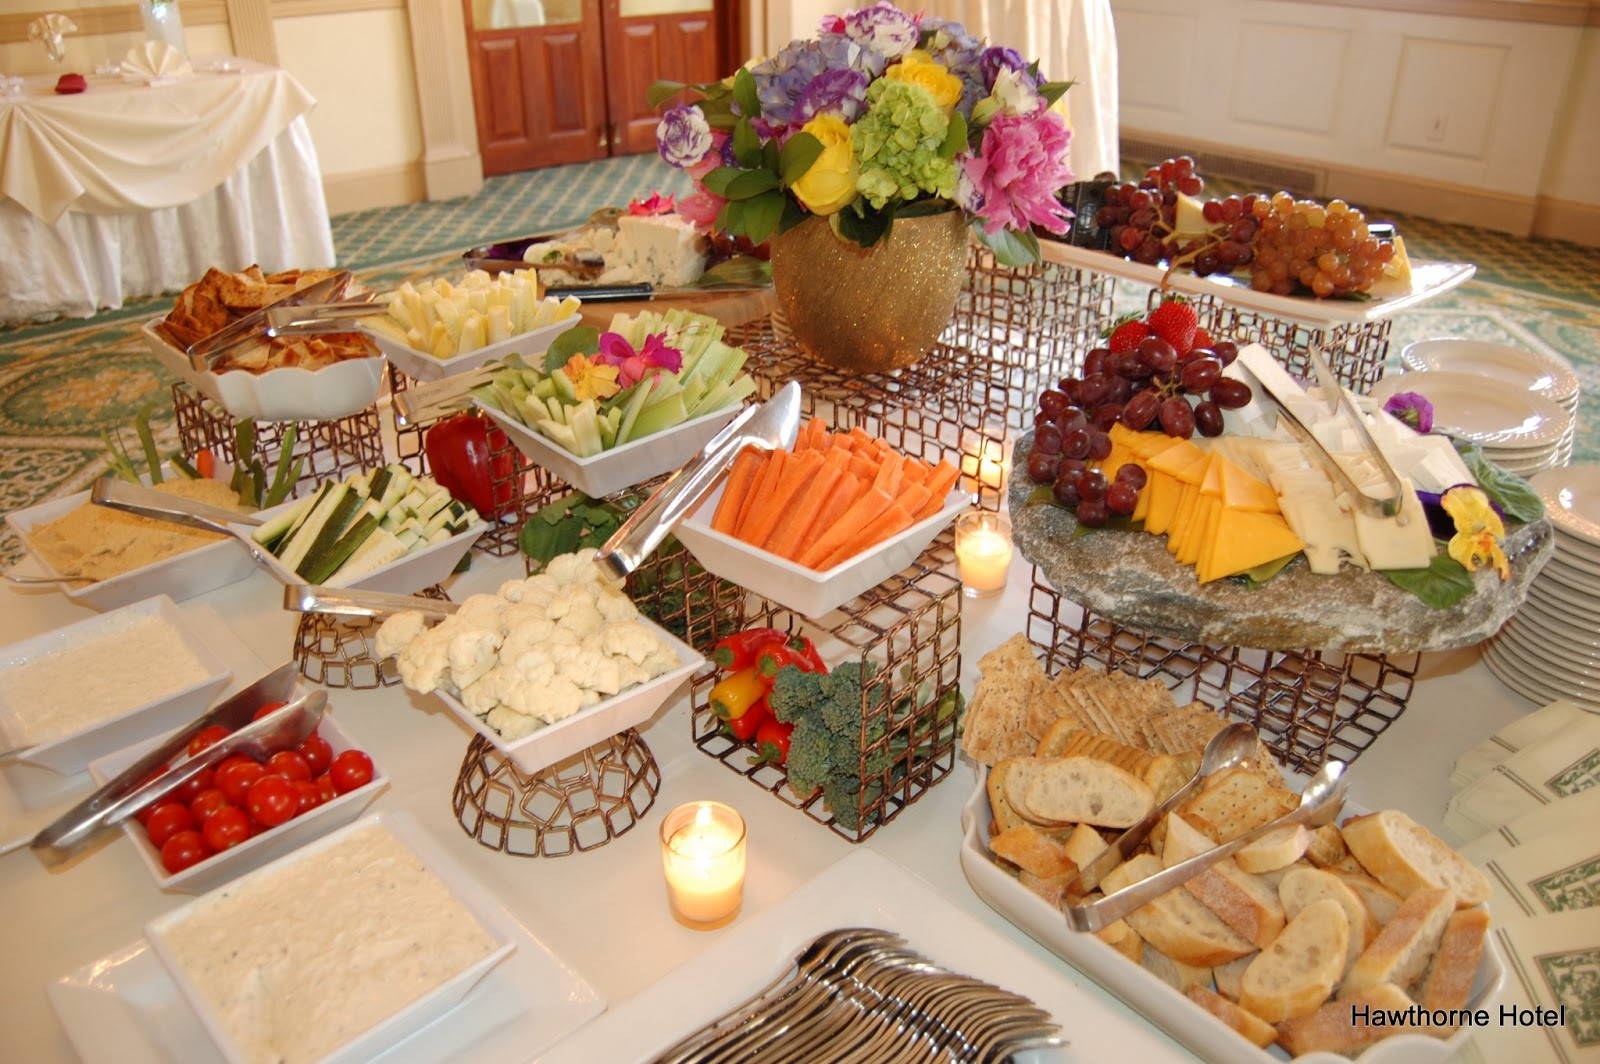 Enjoy a spectacular wedding day with the help of these wonderful recipes and appetizers for guests to enjoy. Enjoy a spectacular wedding day with the help of these wonderful recipes and appetizers for guests to enjoy.